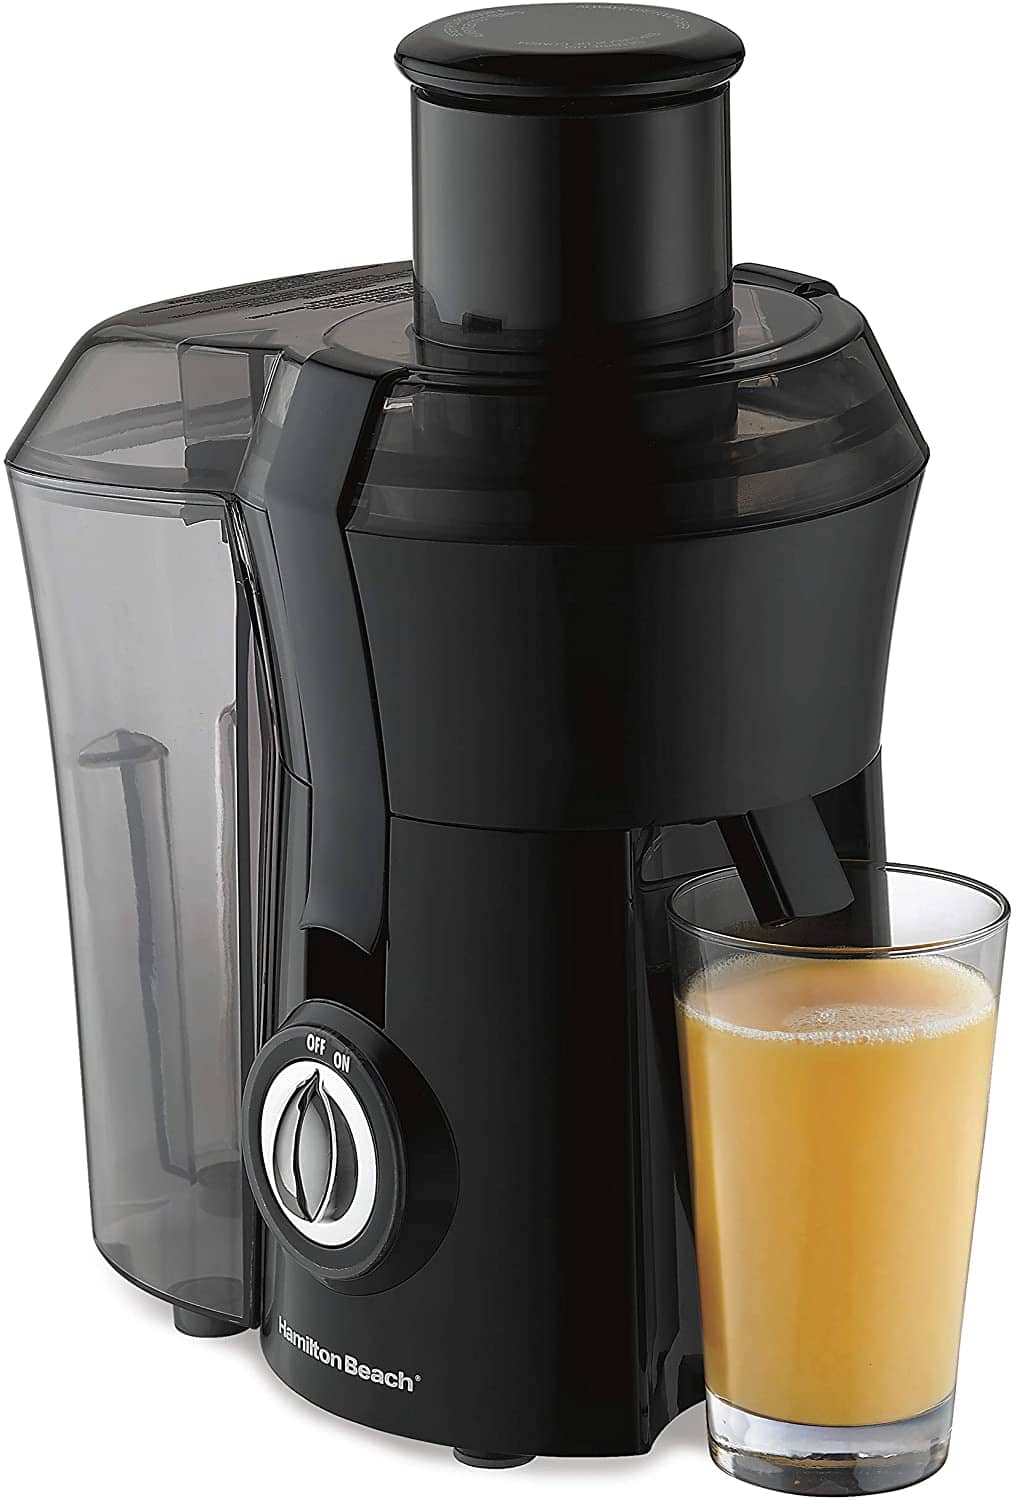 "Hamilton Beach Juicer Machine, Big Mouth 3"" Feed Chute, Centrifugal, Easy to Clean, BPA Free, 800W only $34.99+F/S"